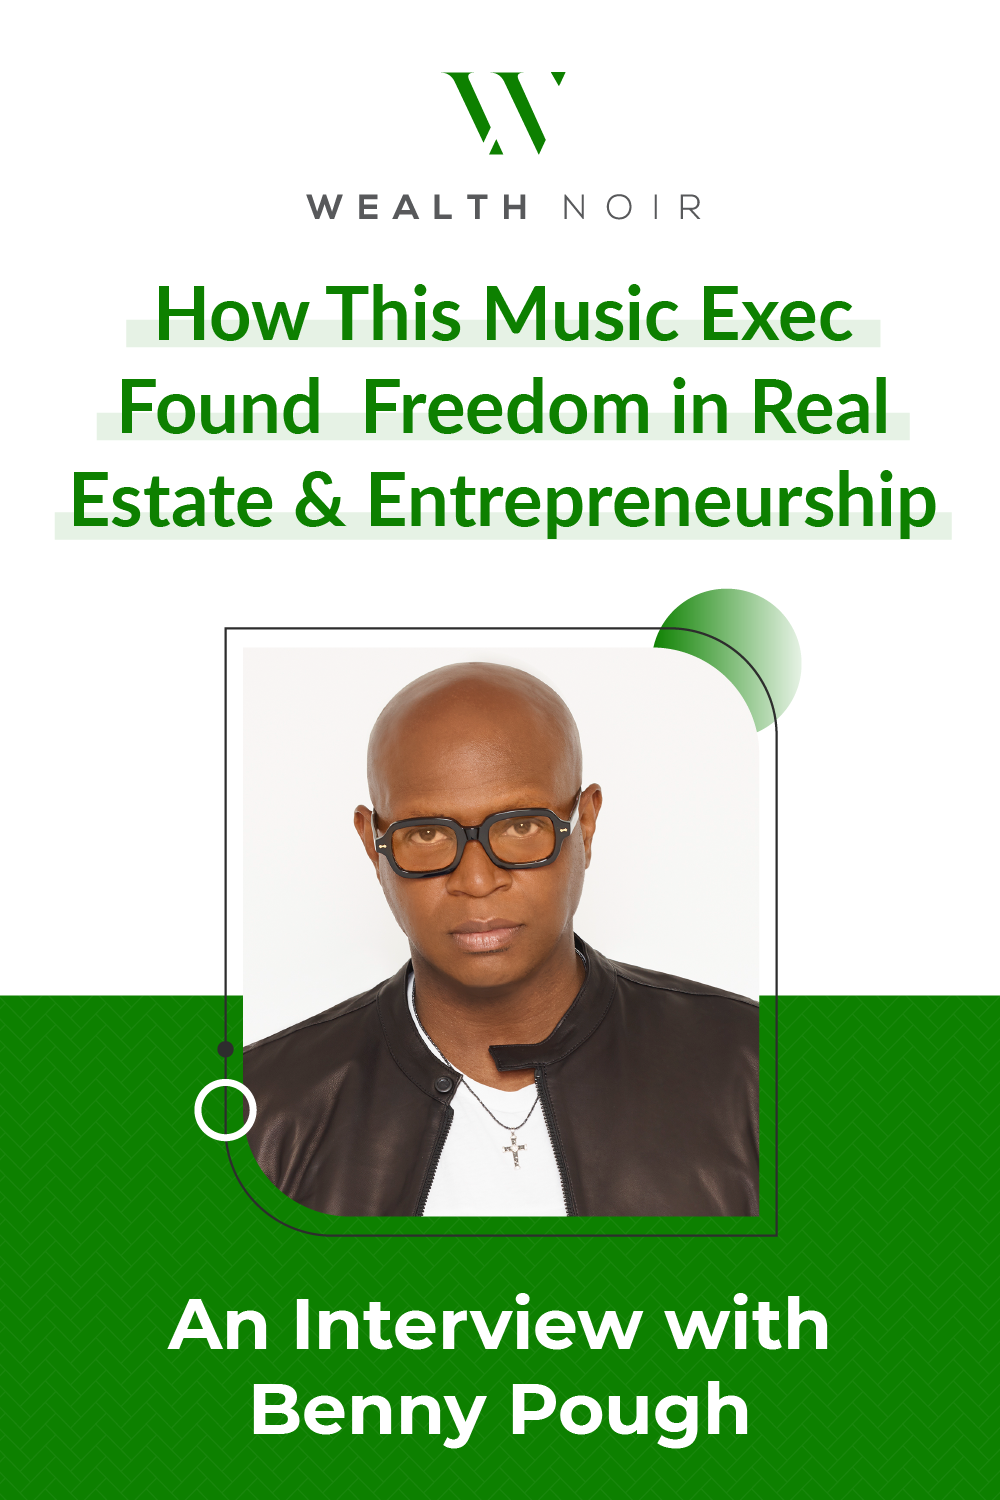 How This Music Exec Found Freedom in Real Estate & Entrepreneurship: An Interview with Benny Pough